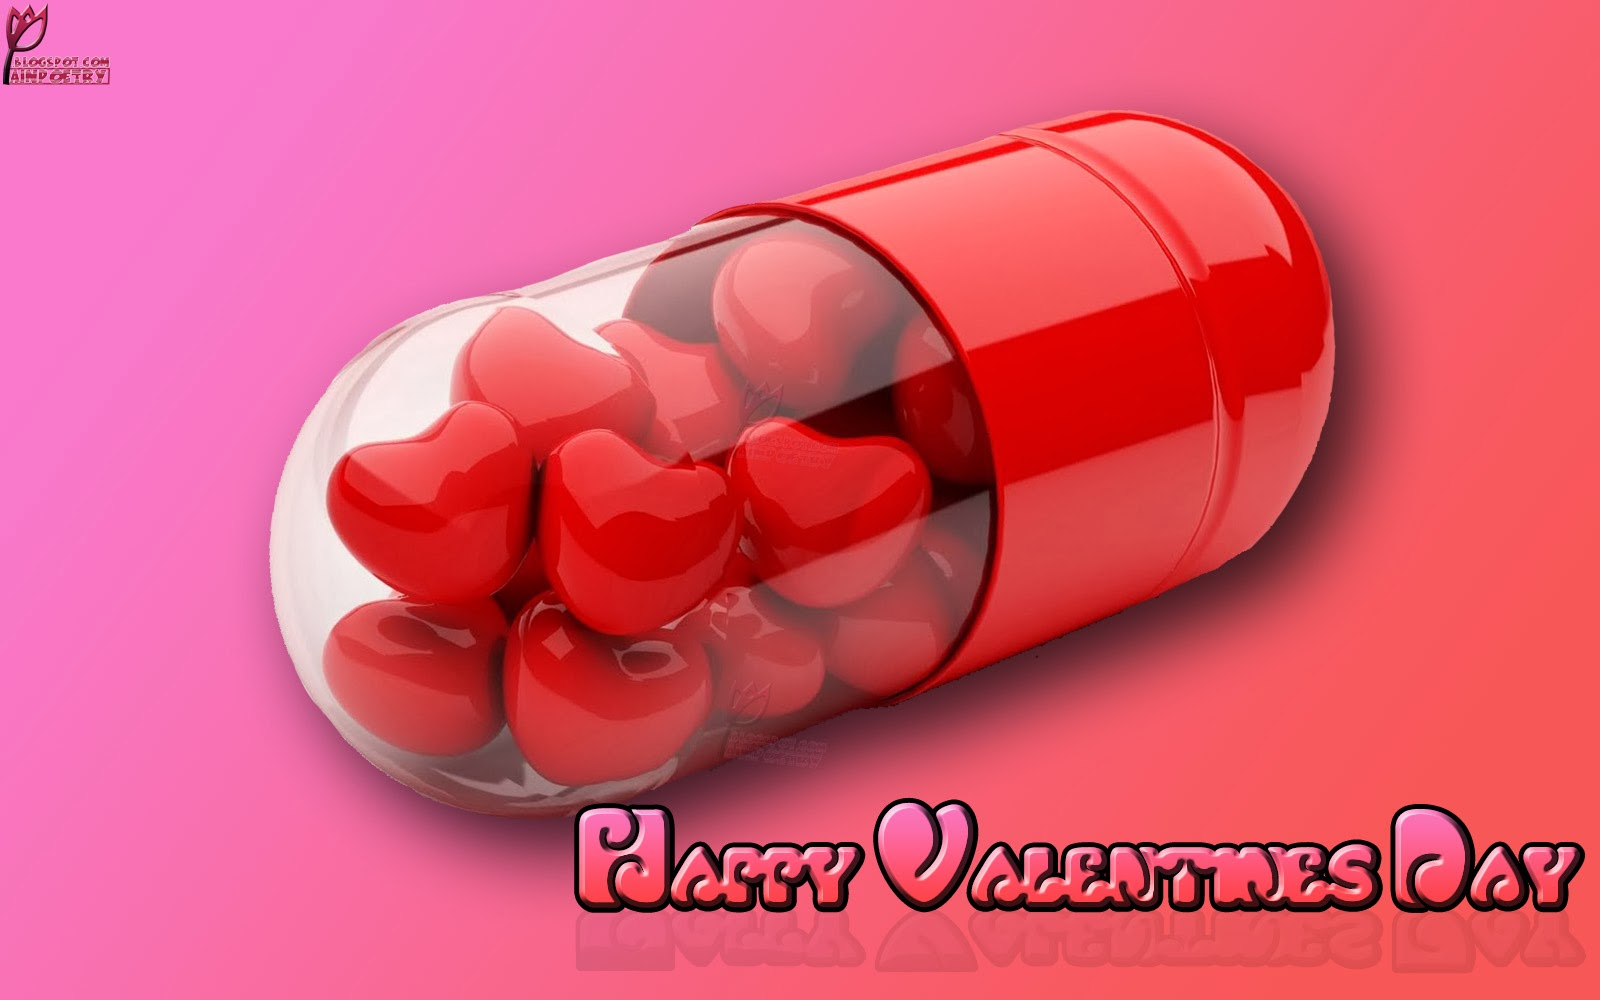 Happy Valentines Day Love Wallpaper Image Photo HD